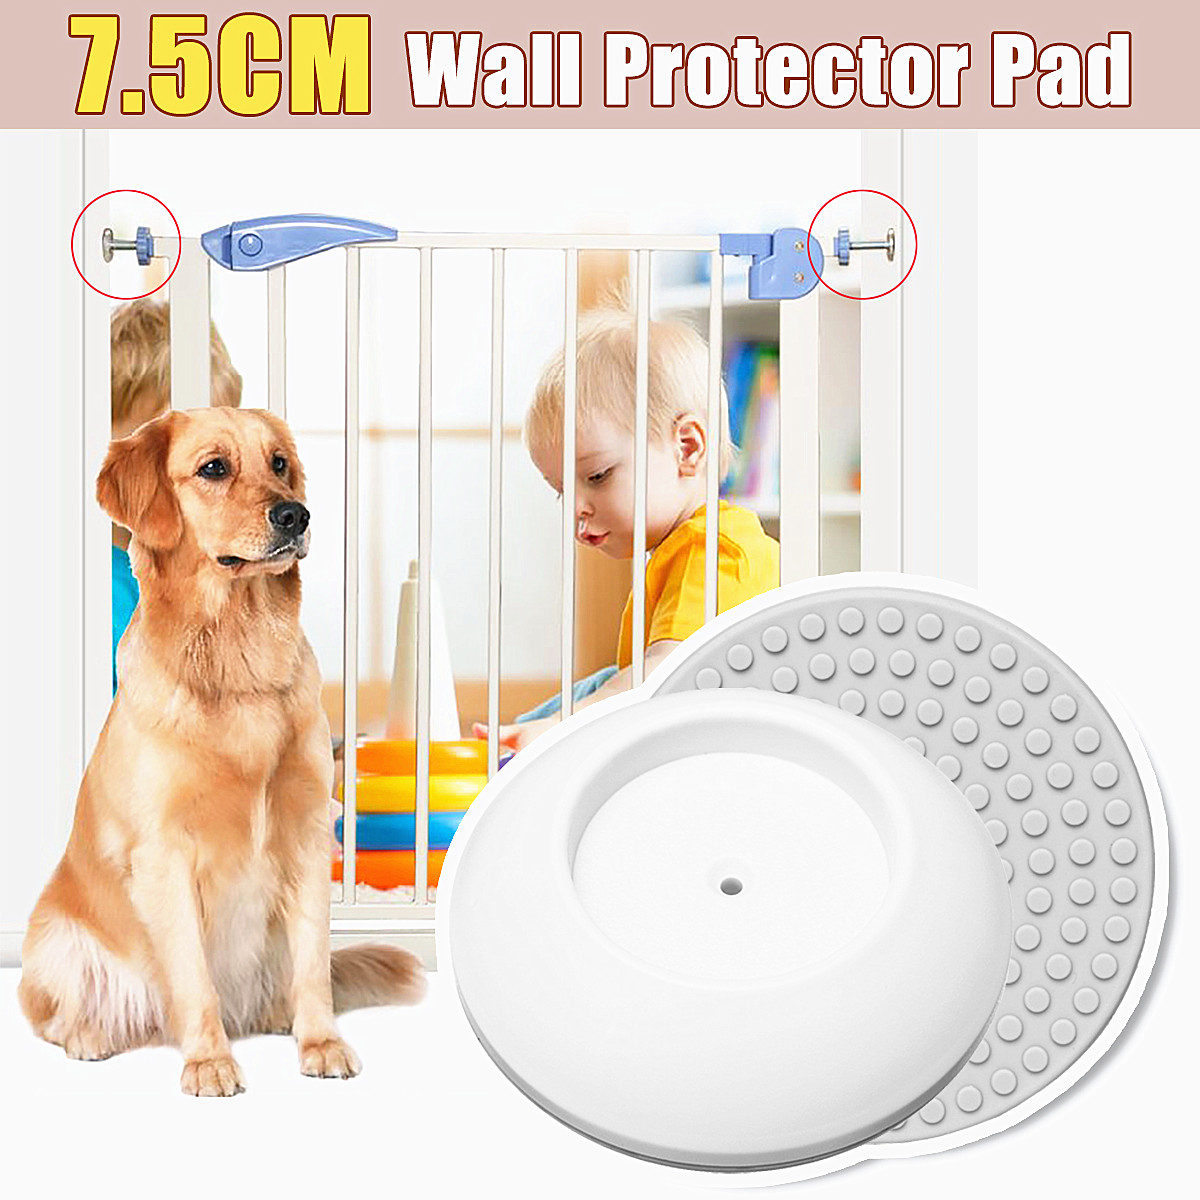 2Pcs Indoor Wall Protector Pad For Children Fence Safety Barrier Pet Partition